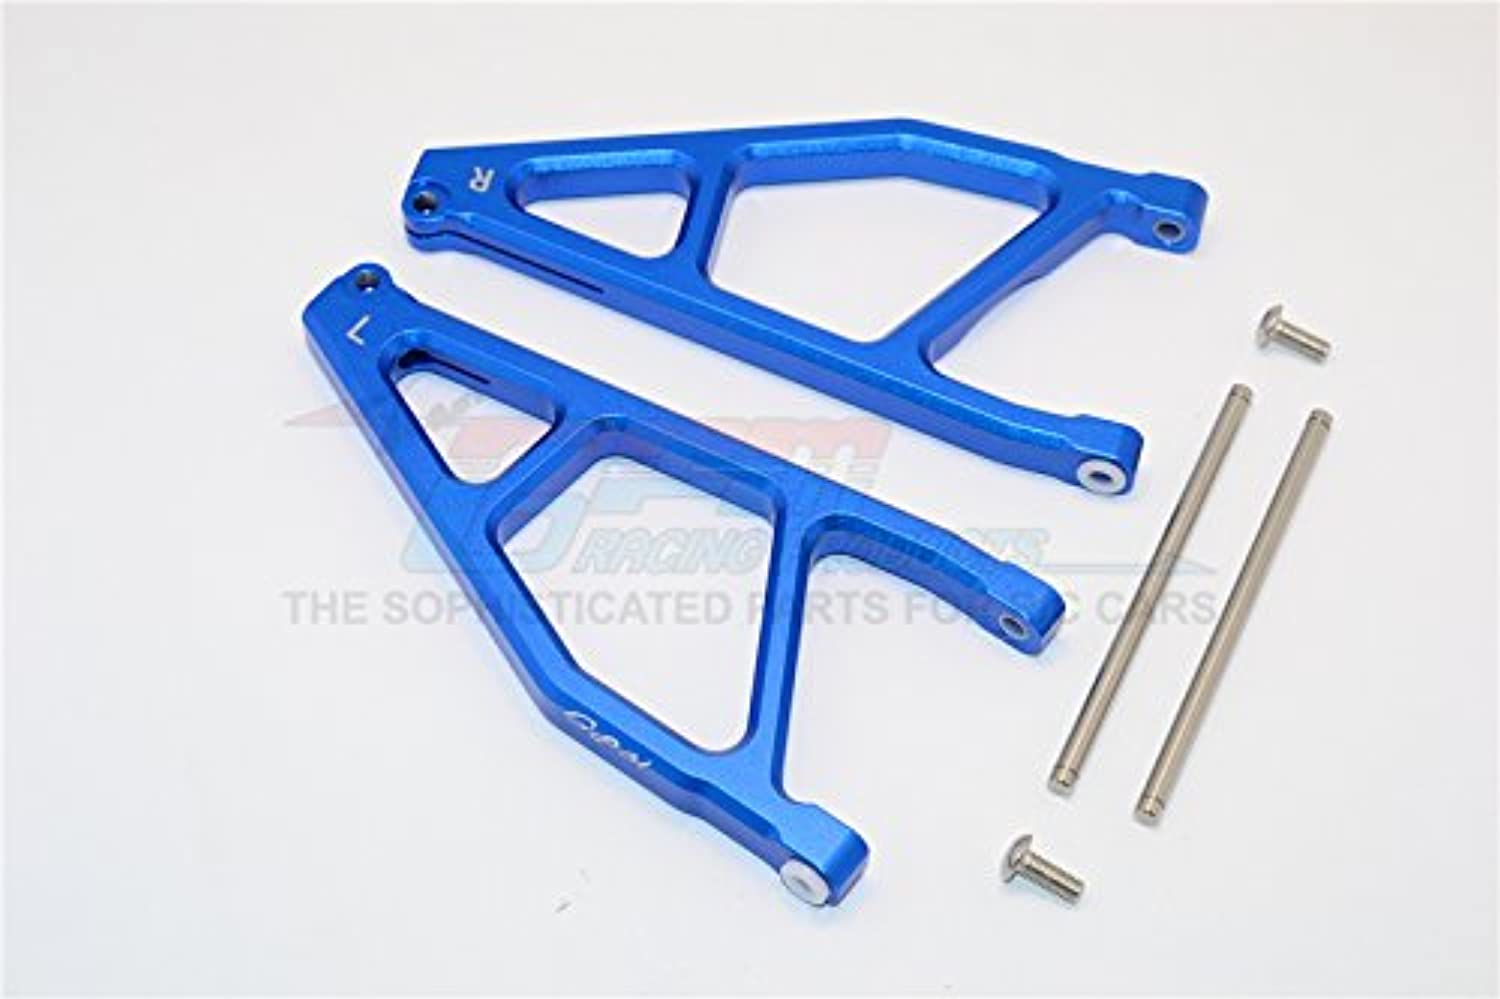 Arrma black 6S BLX (AR106009, AR106011) & Fazon 6S BLX (AR106020) Upgrade Parts Aluminum Rear Upper Arms -1Pr bluee